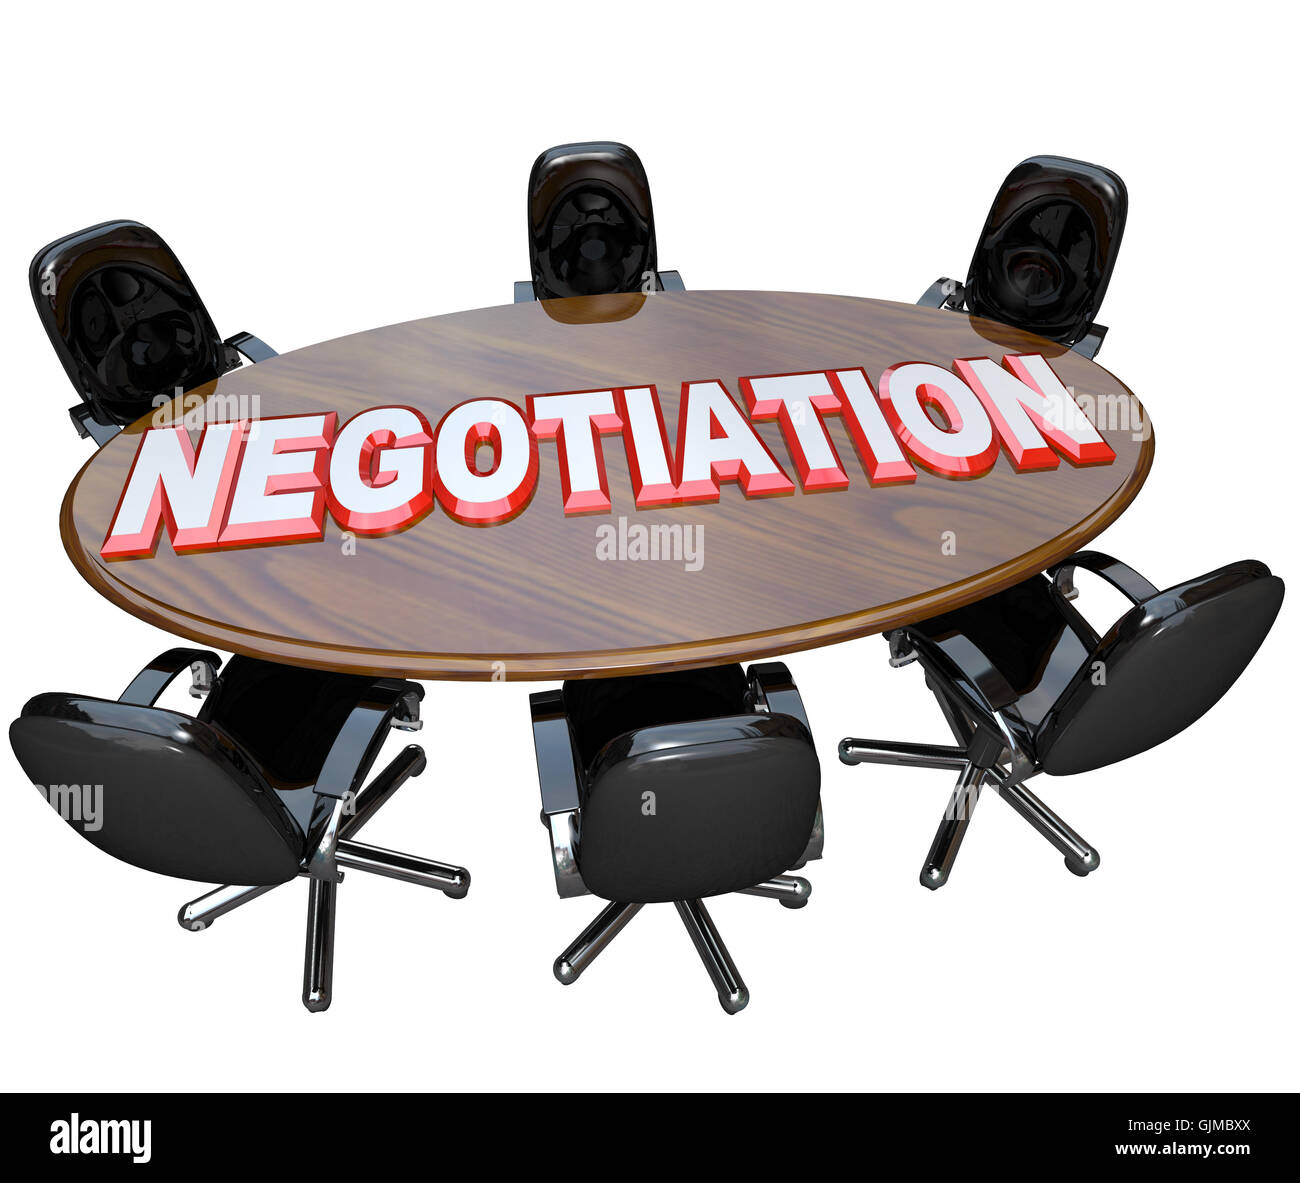 Negotiation Conference Room Table Discussion for Agreement - Stock Image